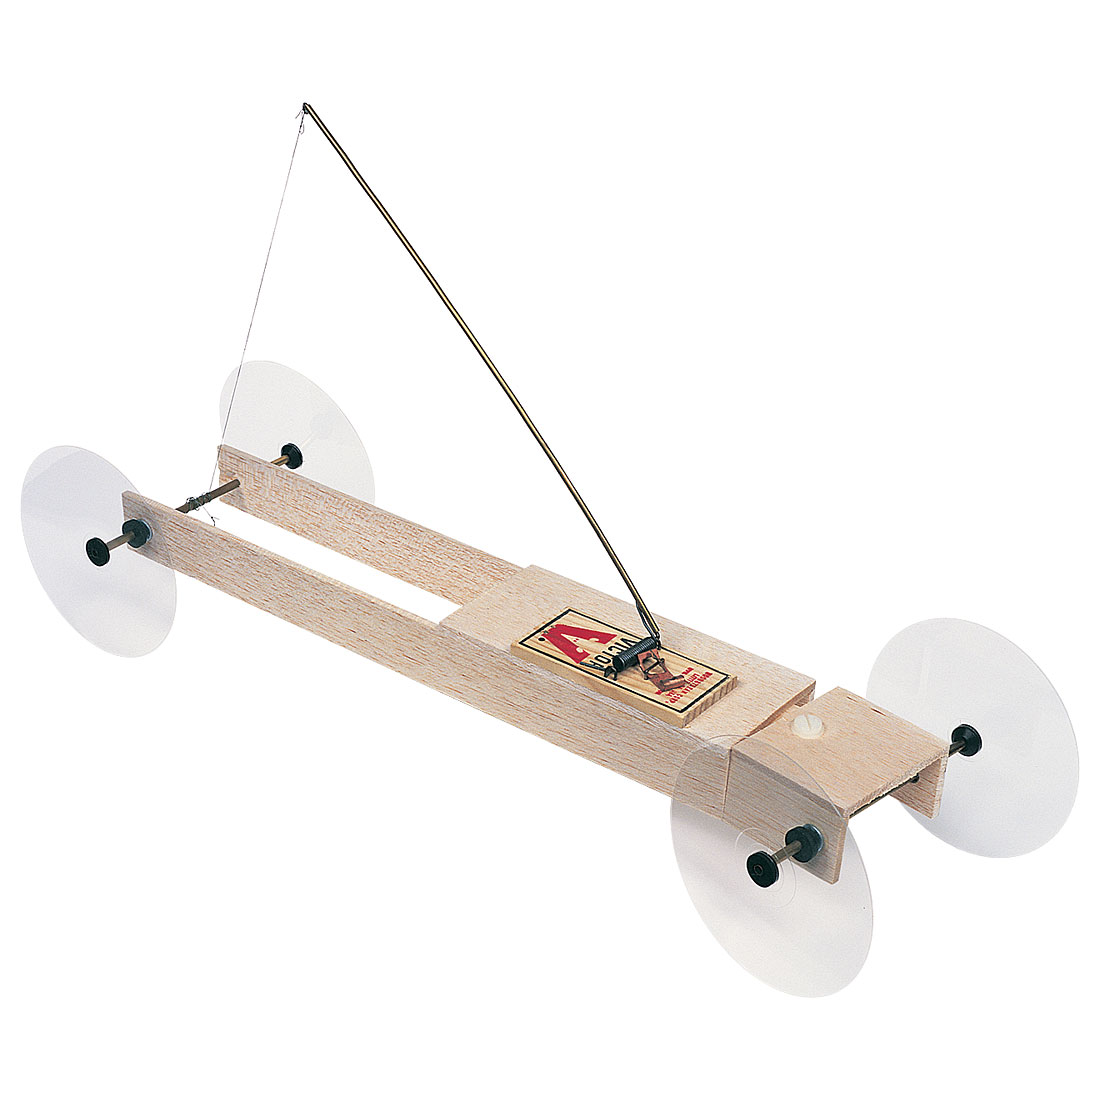 Basic Mousetrap Vehicle Kit Ii With Steering